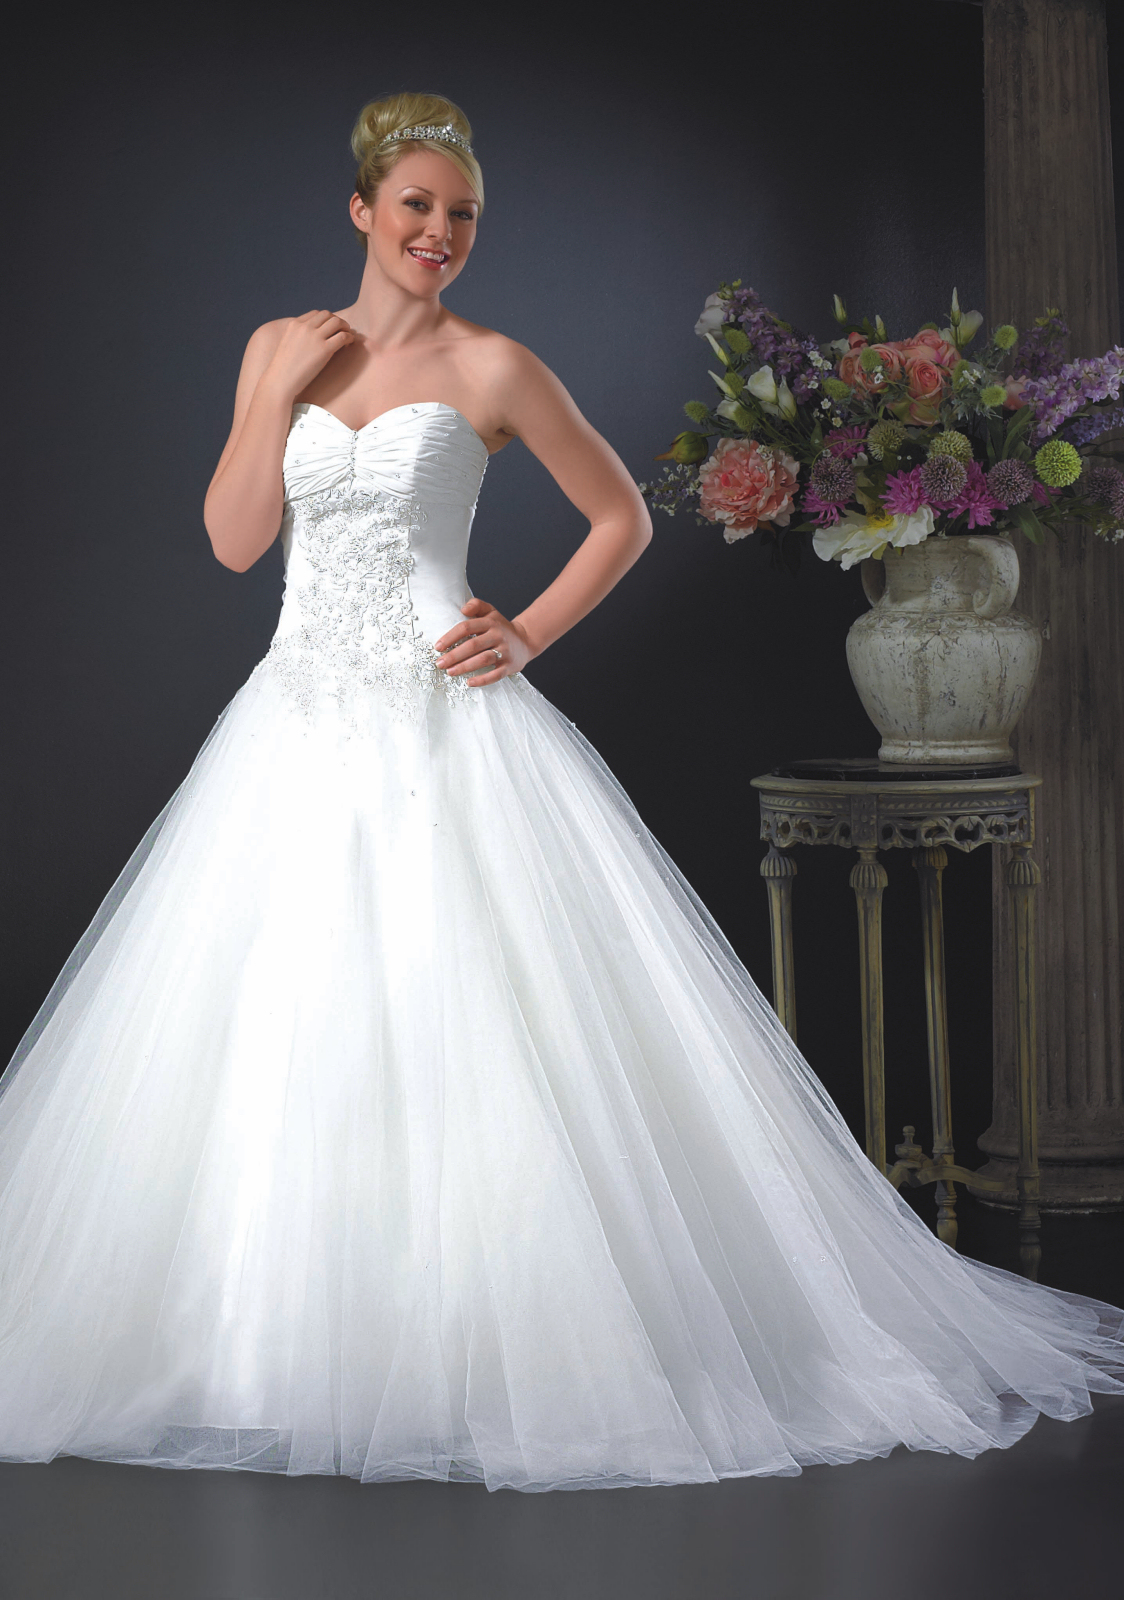 Rental wedding dresses in phoenix az wedding dresses asian for Wedding dresses for rental